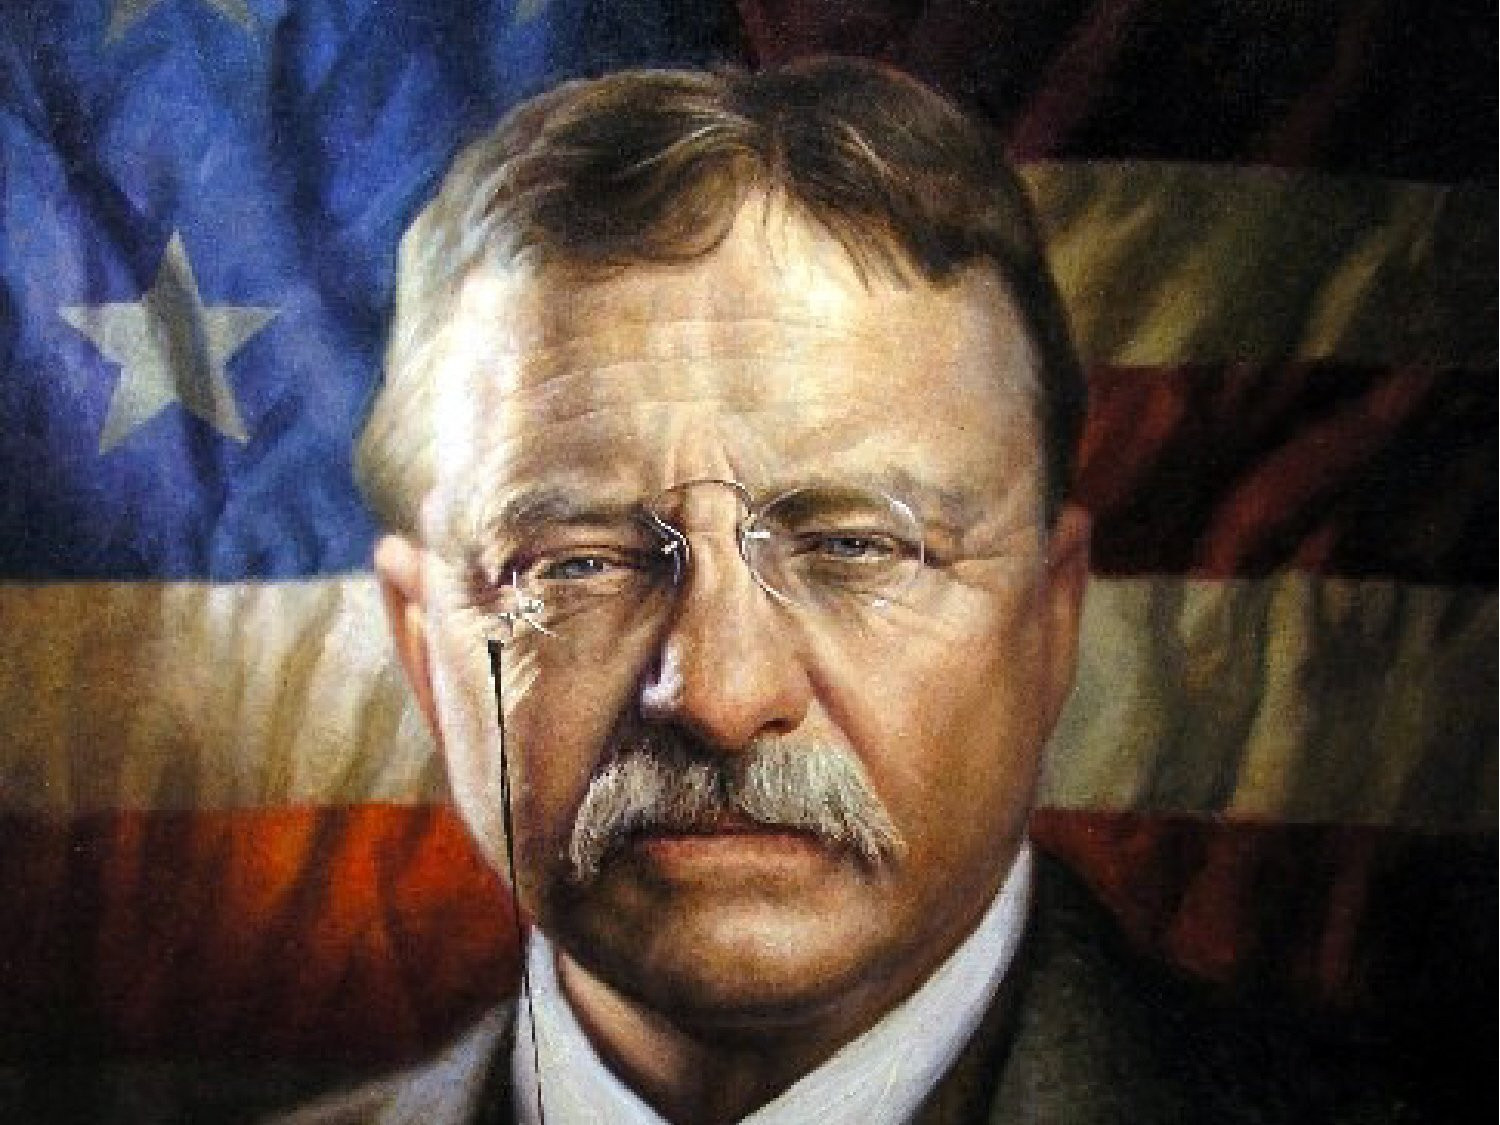 theodore-teddy-roosevelt-1a1 - Frederic Donner Books